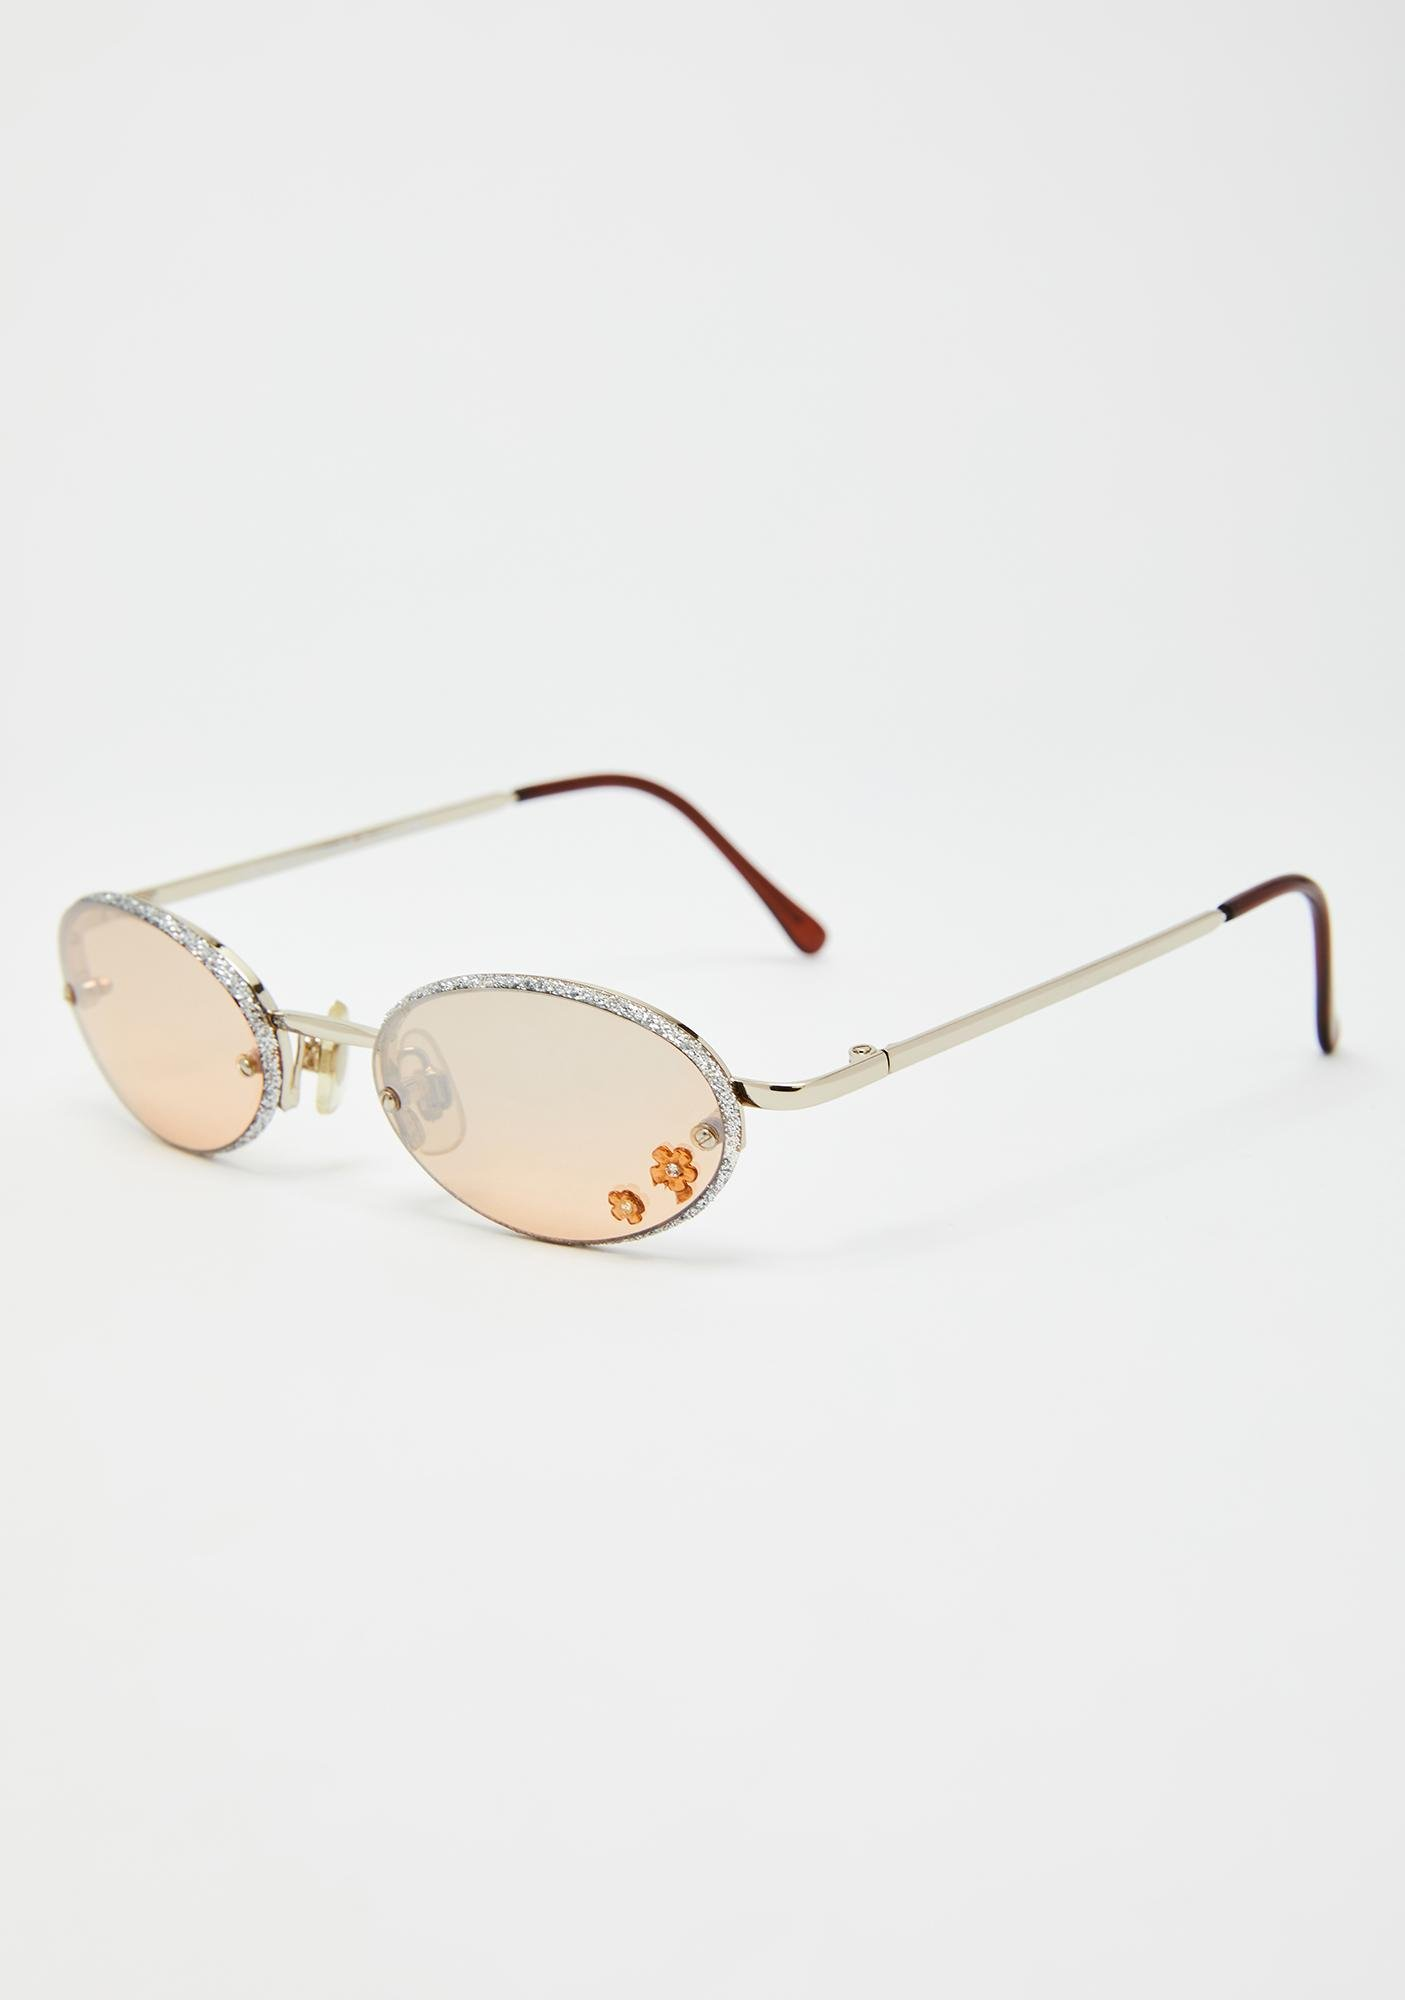 Replay Vintage Sunglasses Chrome Just A Girl Flower Sunglasses